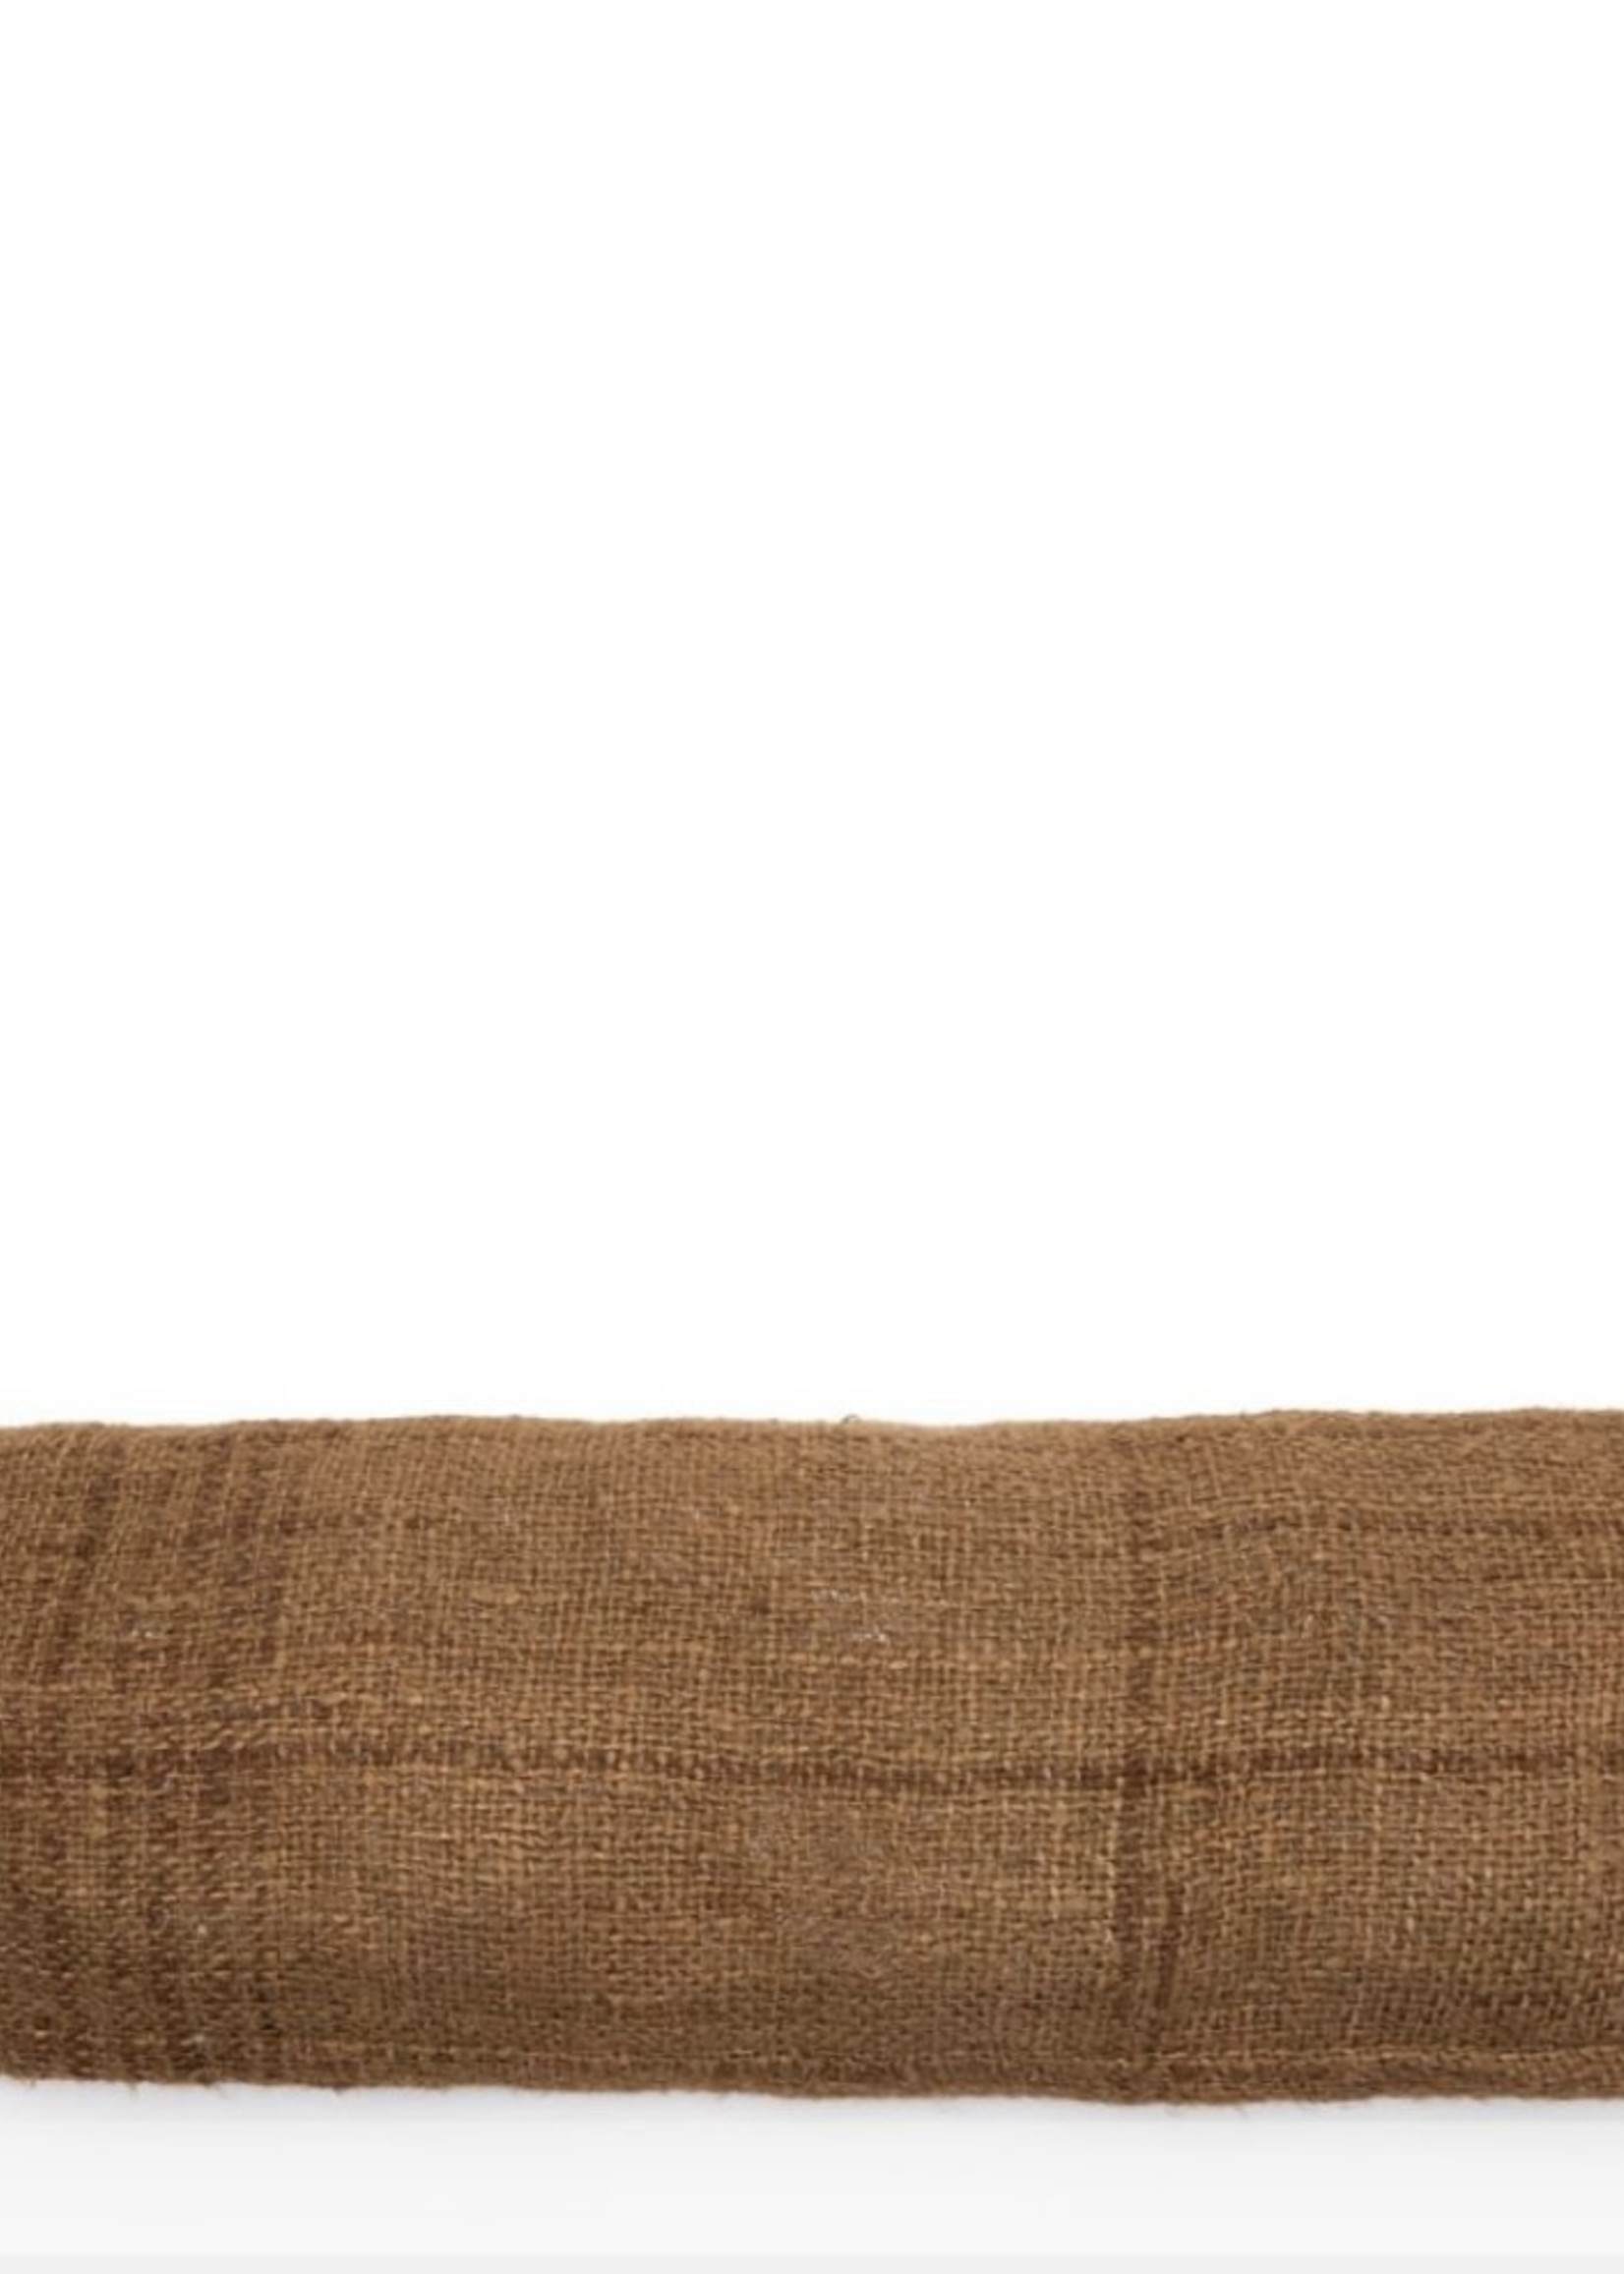 Guts & Goats The Oh My Gee Cushion Cover - Brown